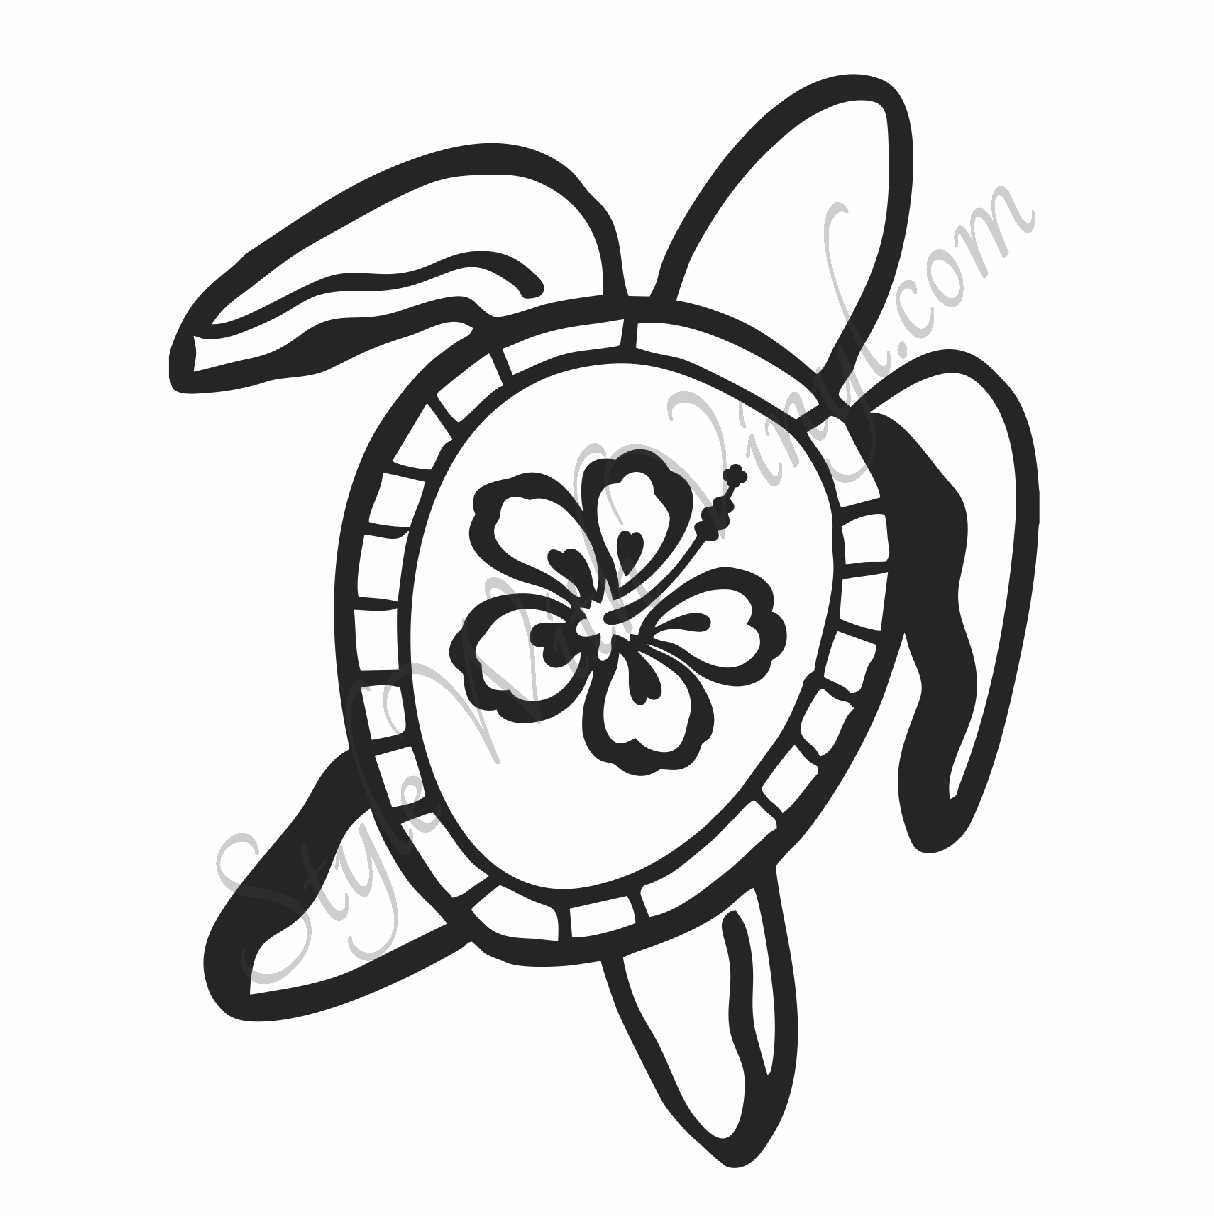 Hawaiian flower outline free download best hawaiian flower outline 1214x1221 hawaiian flower coloring pages izmirmasajfo